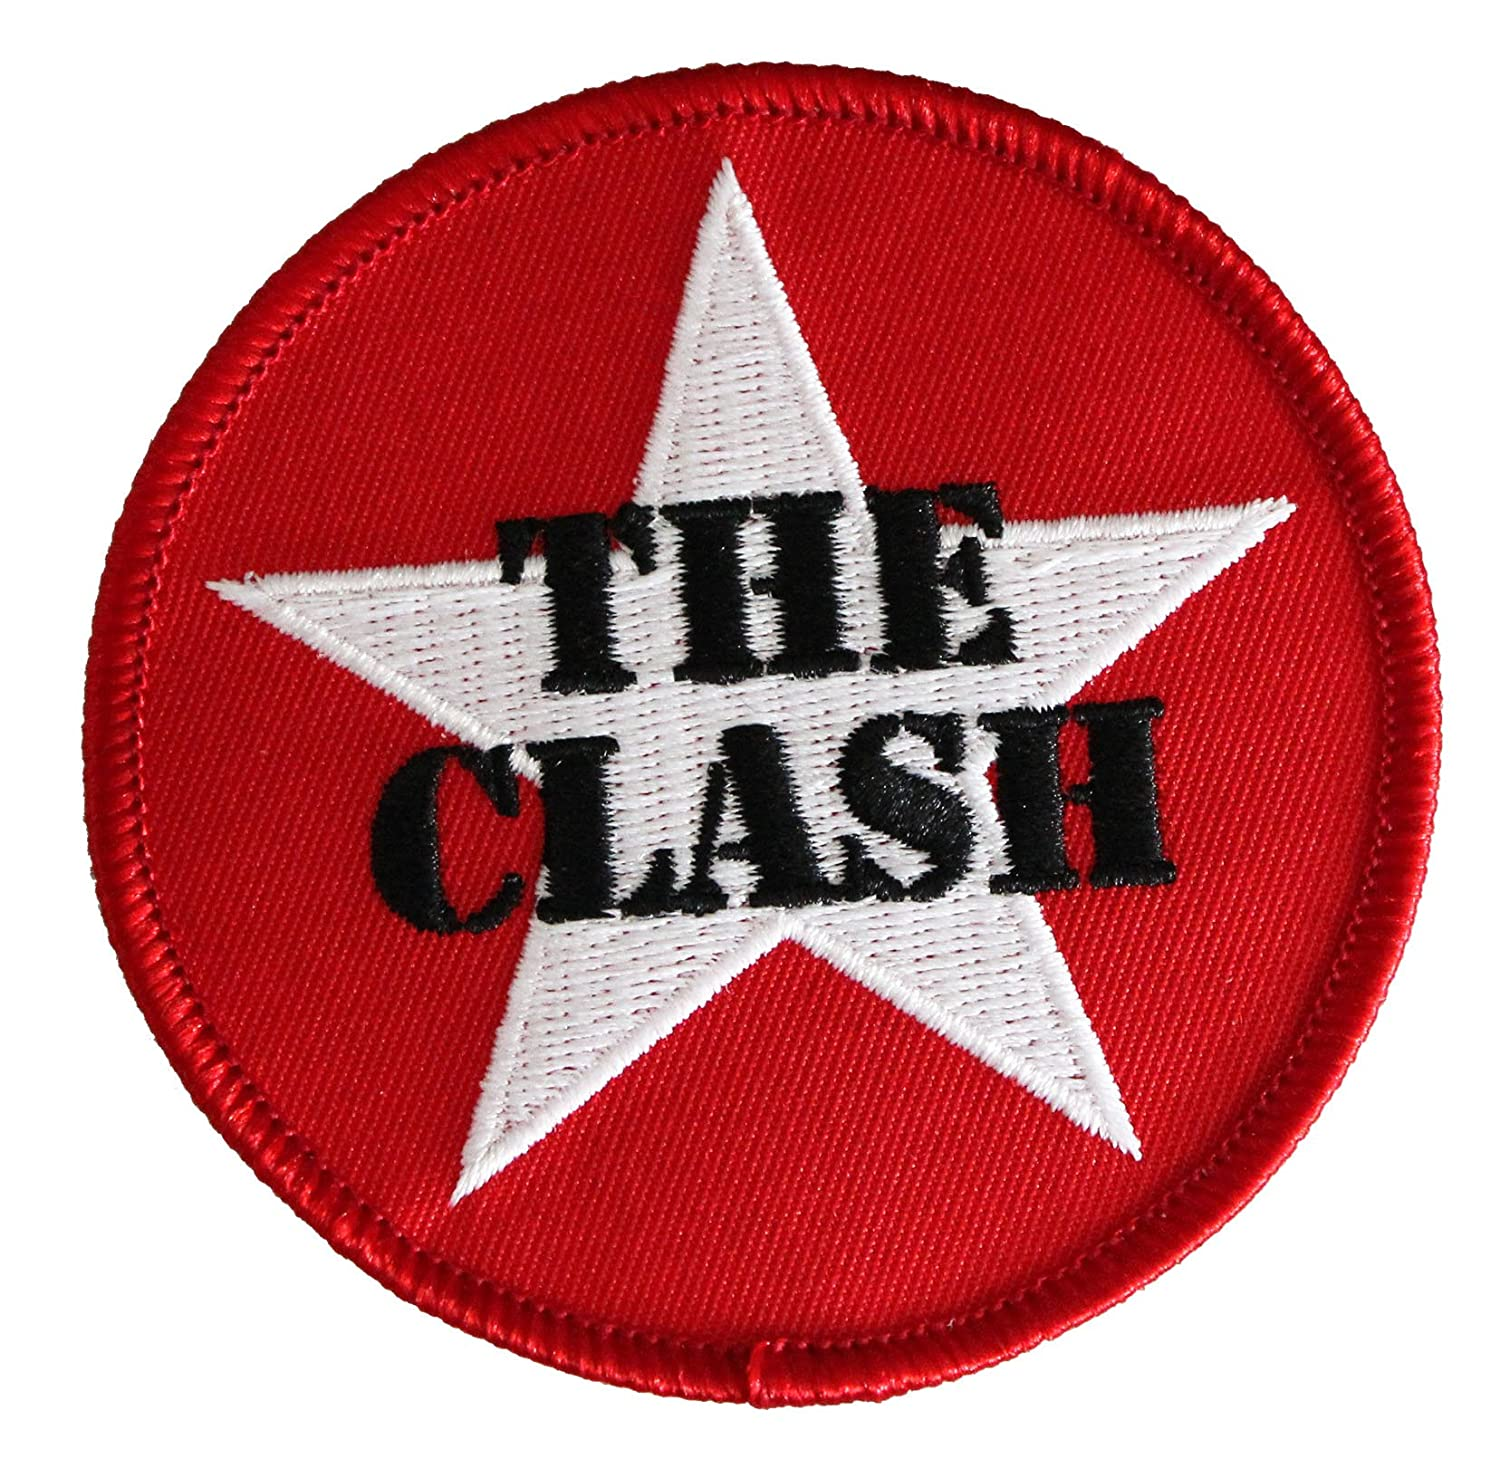 3 x 3 Embroidered PATCH PARCHE High Quality Iron-On // Sew-On THE CLASH Star Logo Officially Licensed Original Artwork